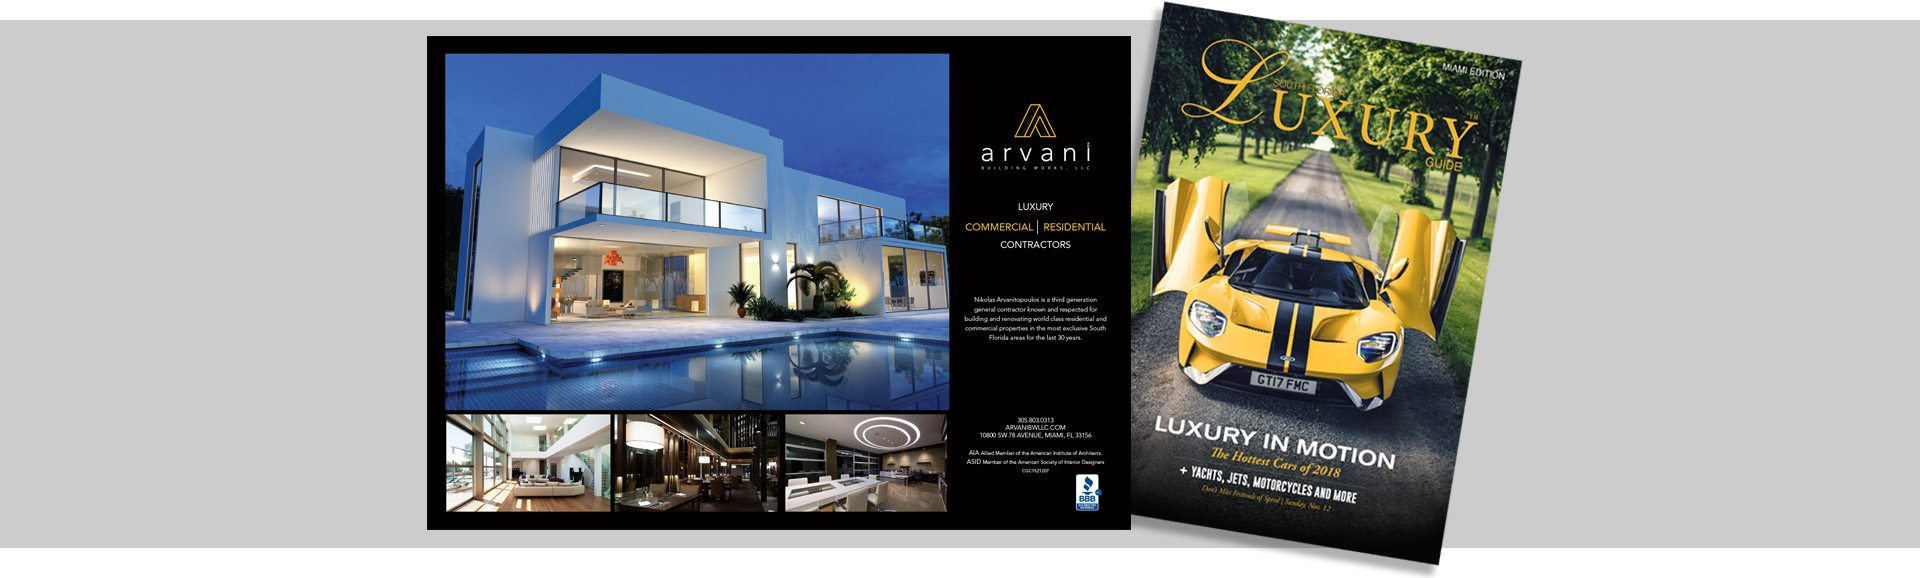 publication2-LUXURYjpg